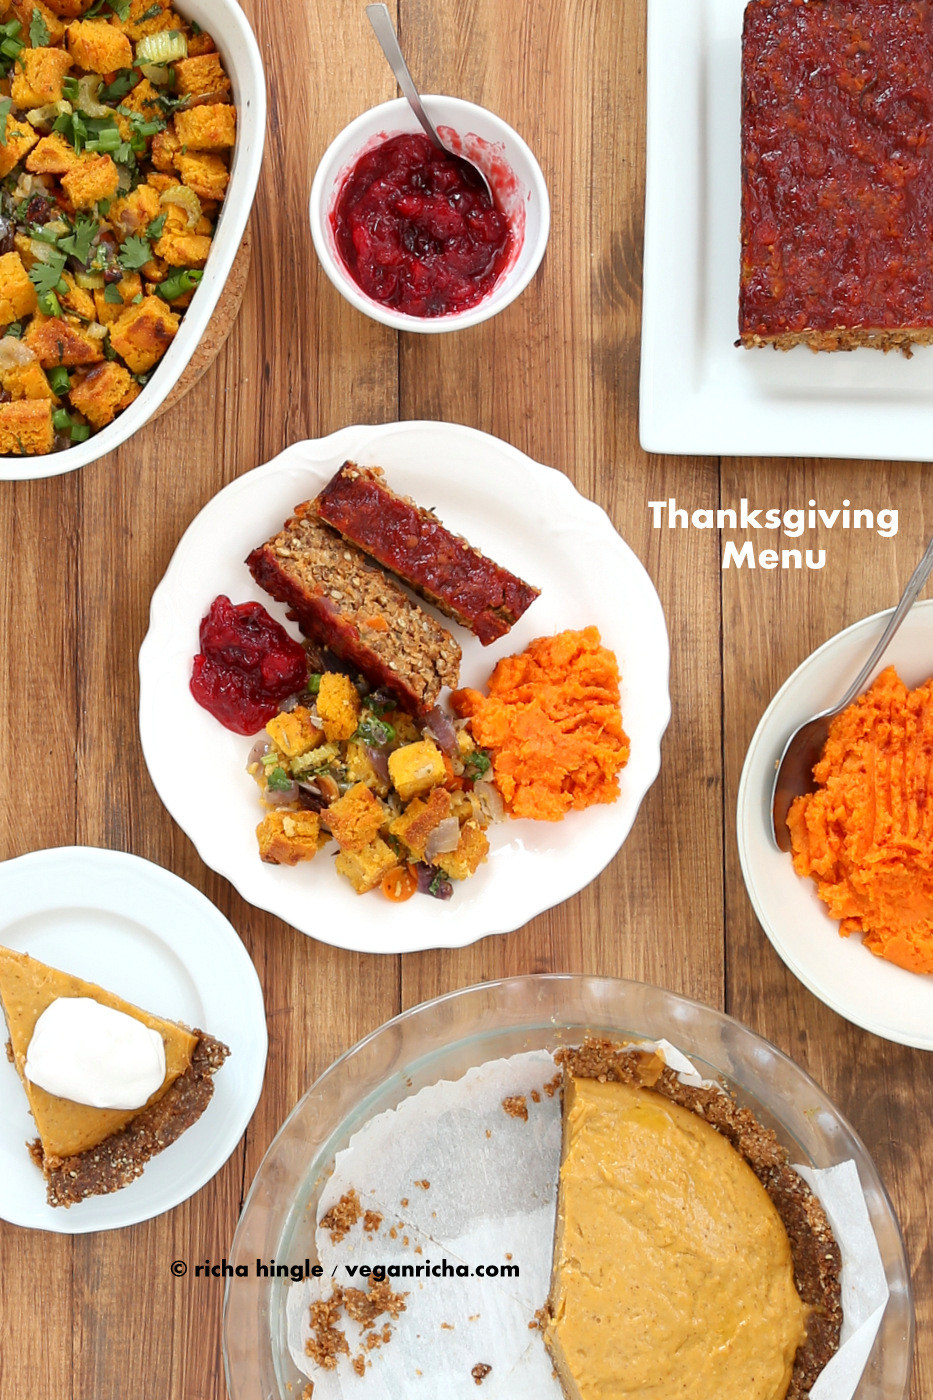 Vegan Thanksgiving Menu  80 Vegan Thanksgiving Recipes 2014 Vegan Richa